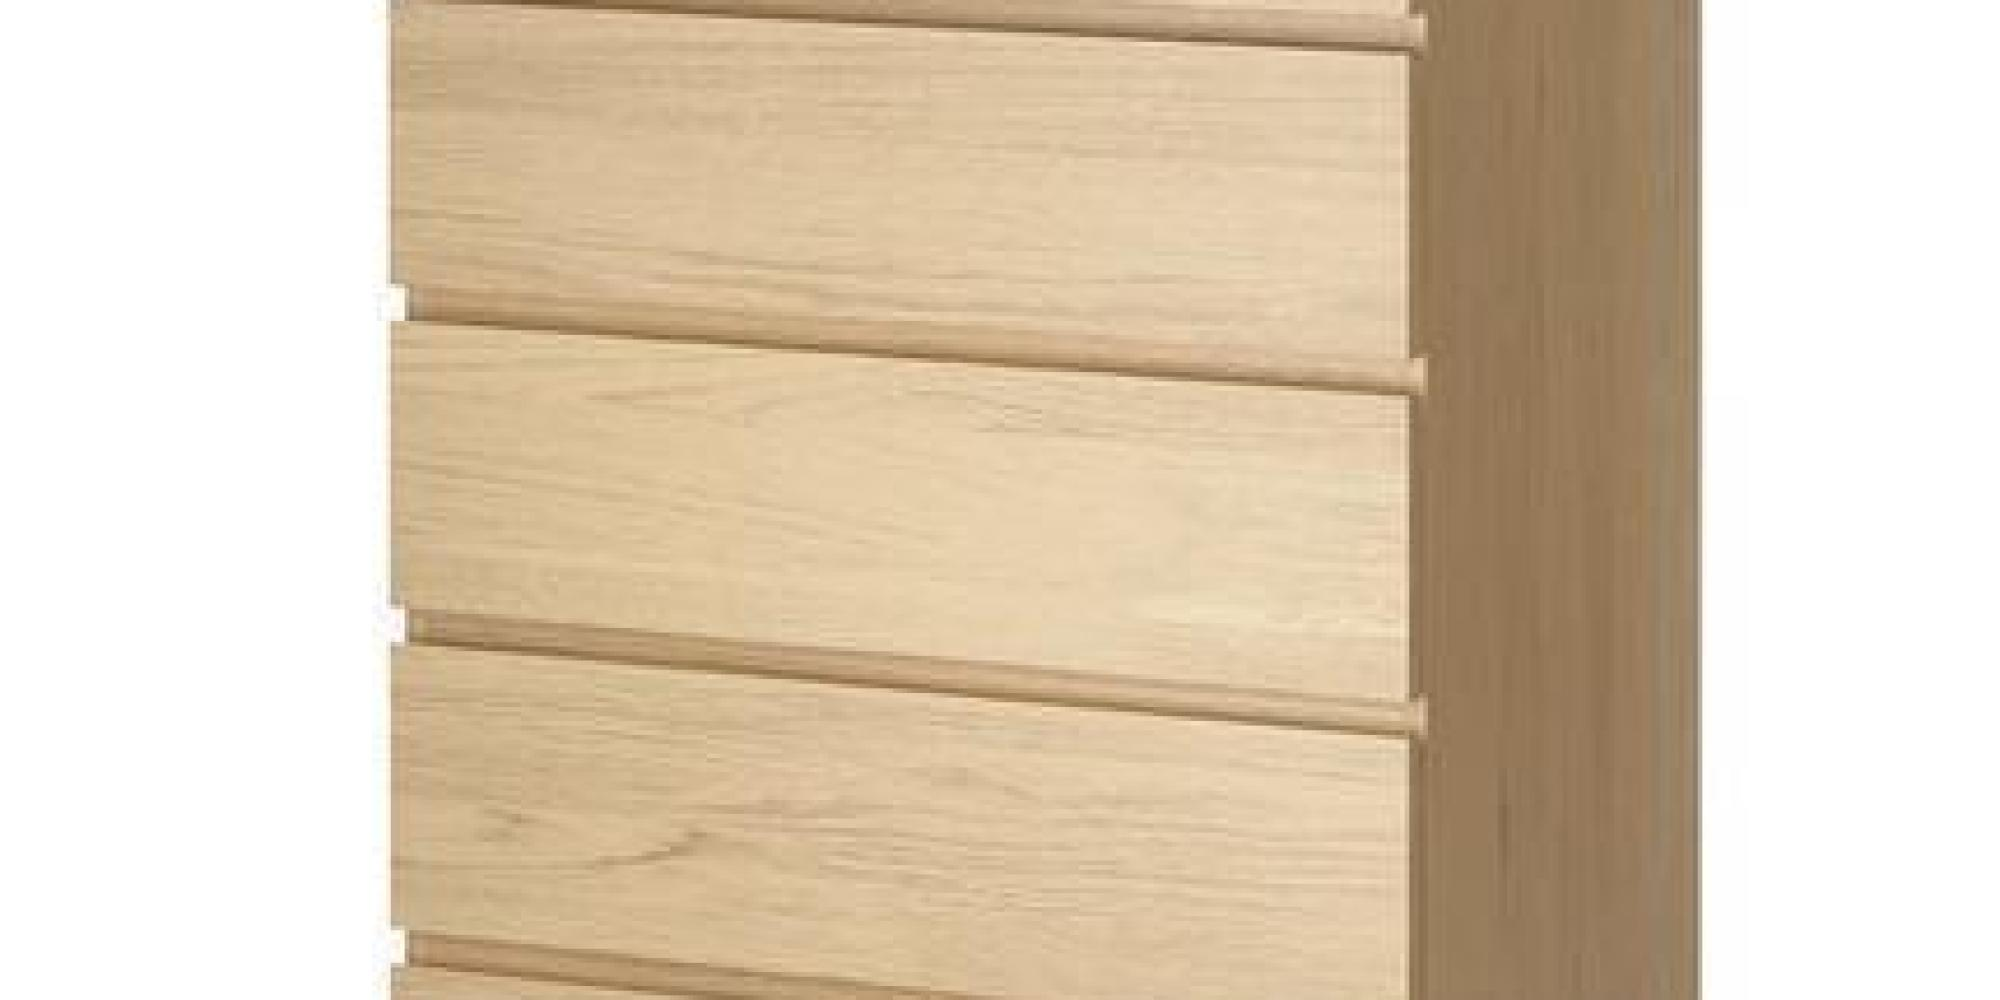 ikea safety alert after two toddlers are killed by falling malm chests of drawers huffpost uk. Black Bedroom Furniture Sets. Home Design Ideas